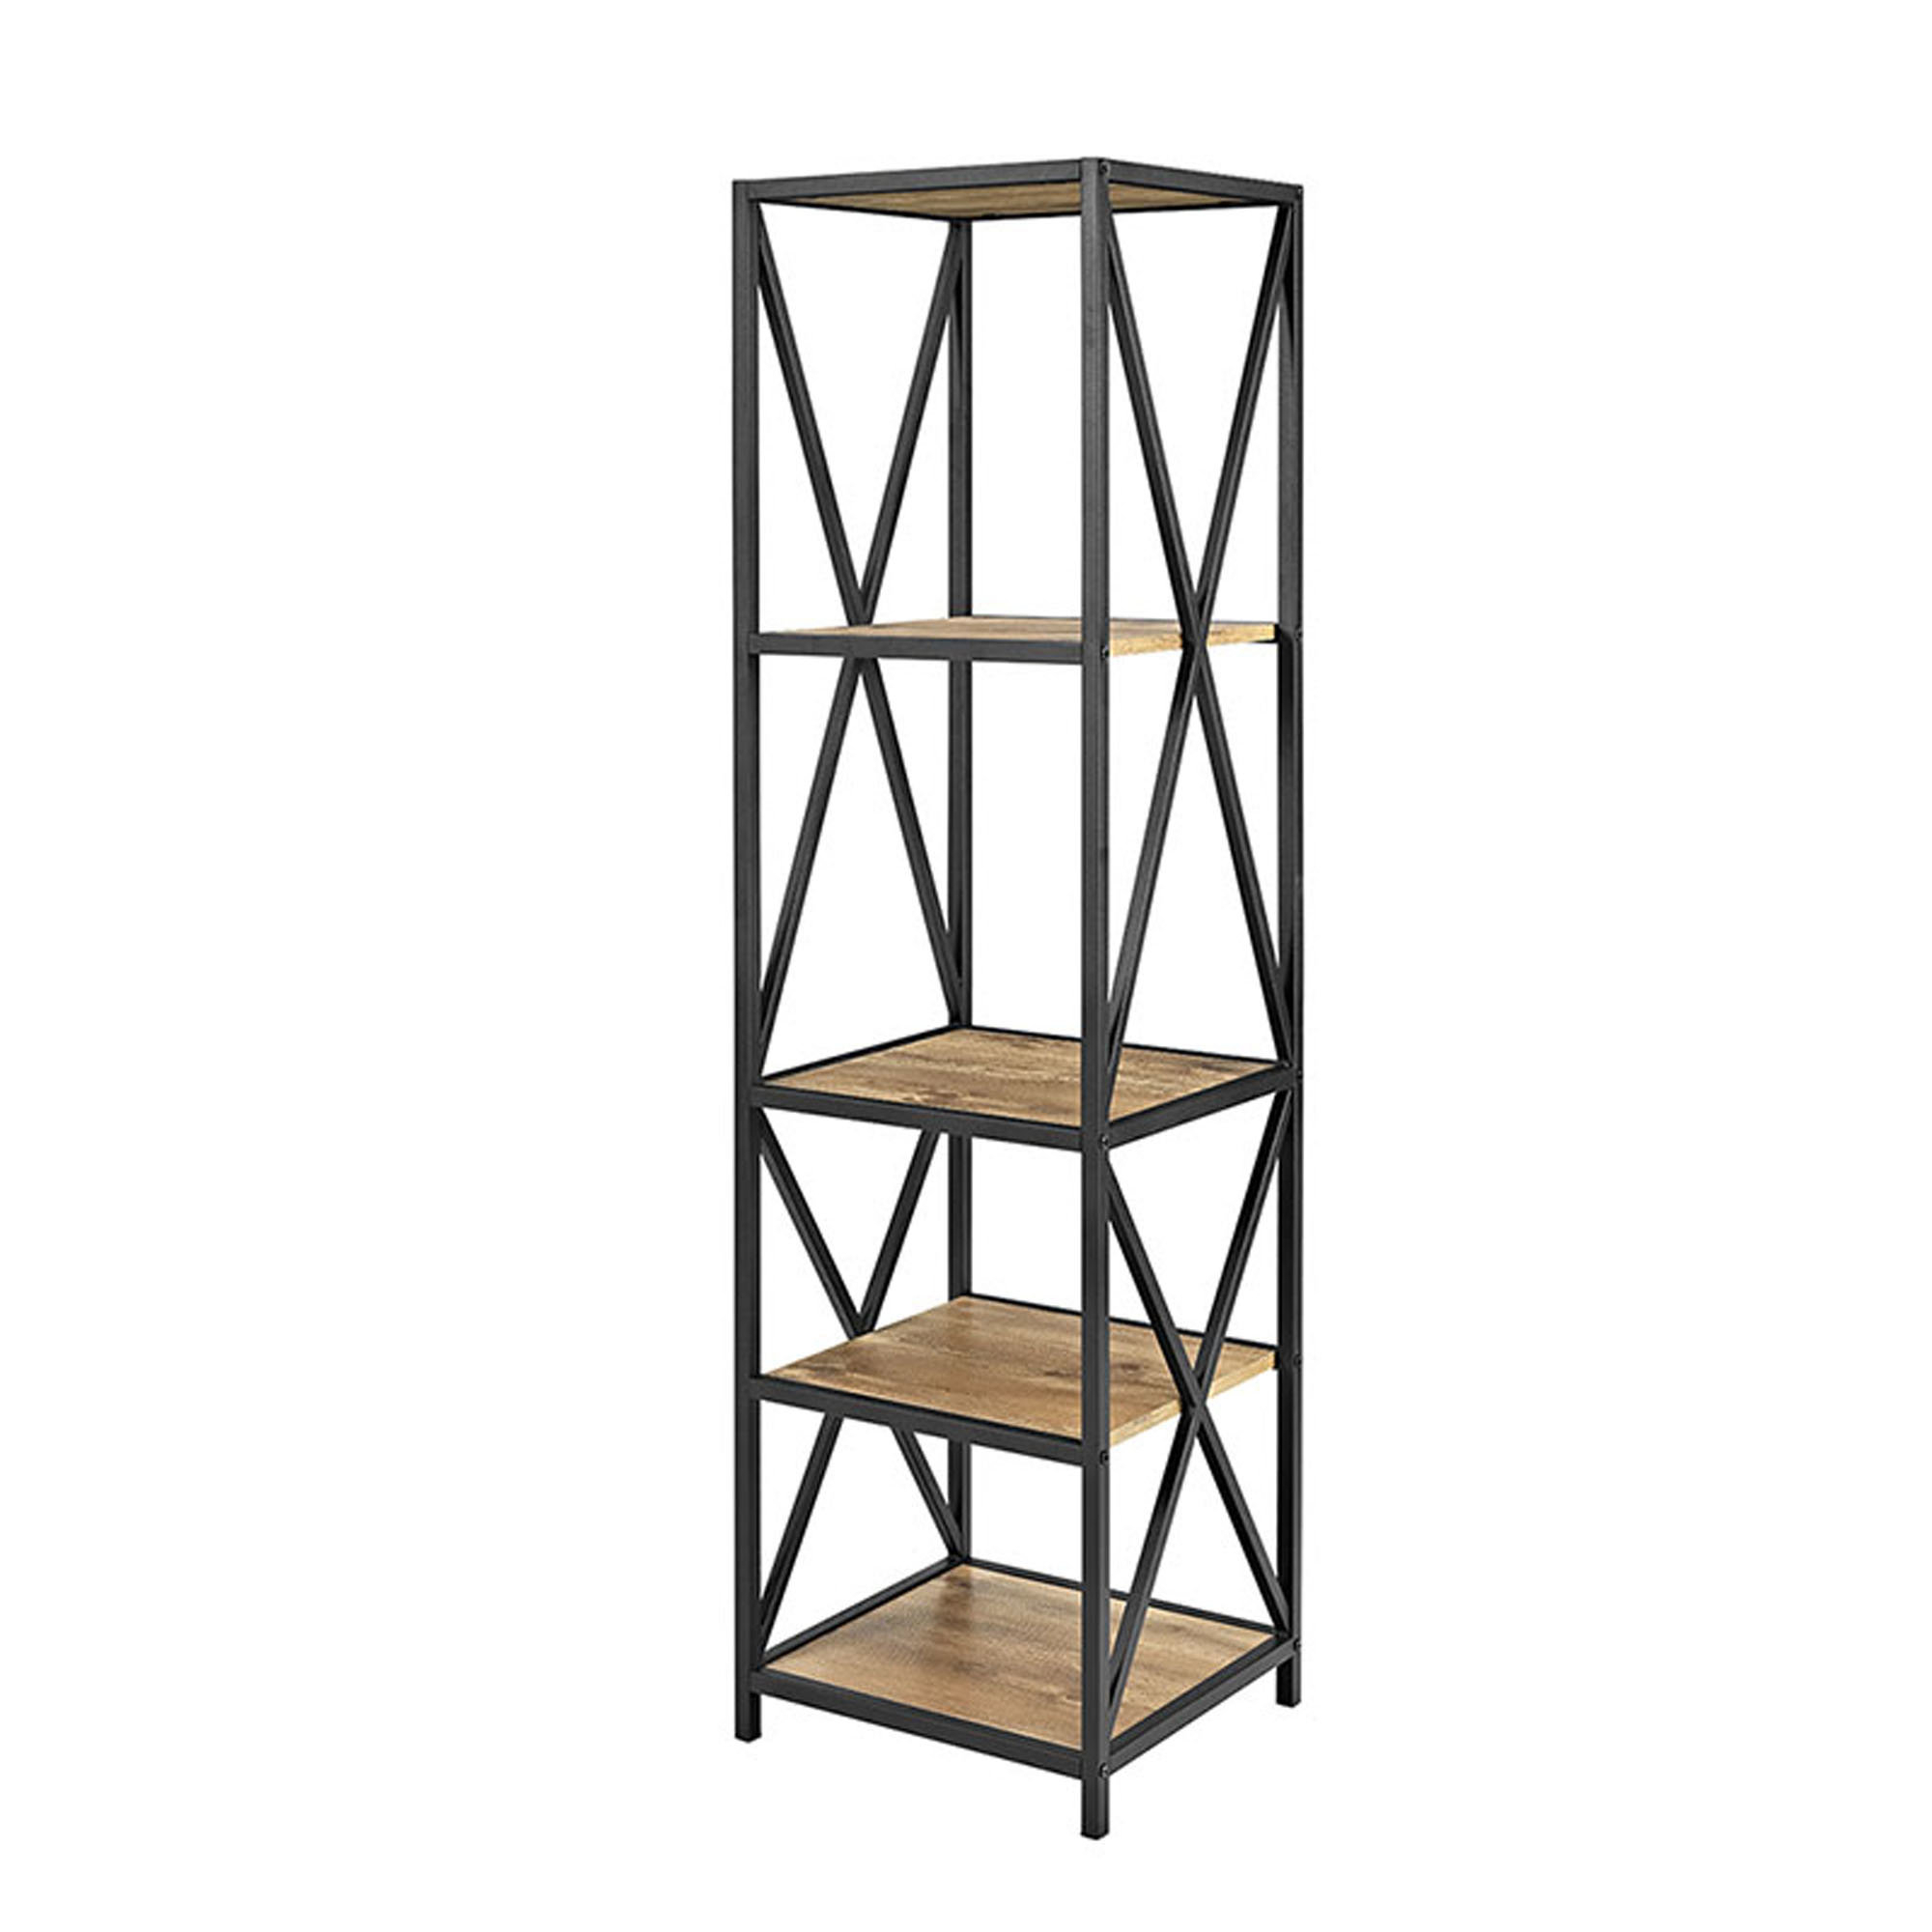 Macon Etagere Bookcases With Widely Used Augustus Etagere Bookcase (View 15 of 20)